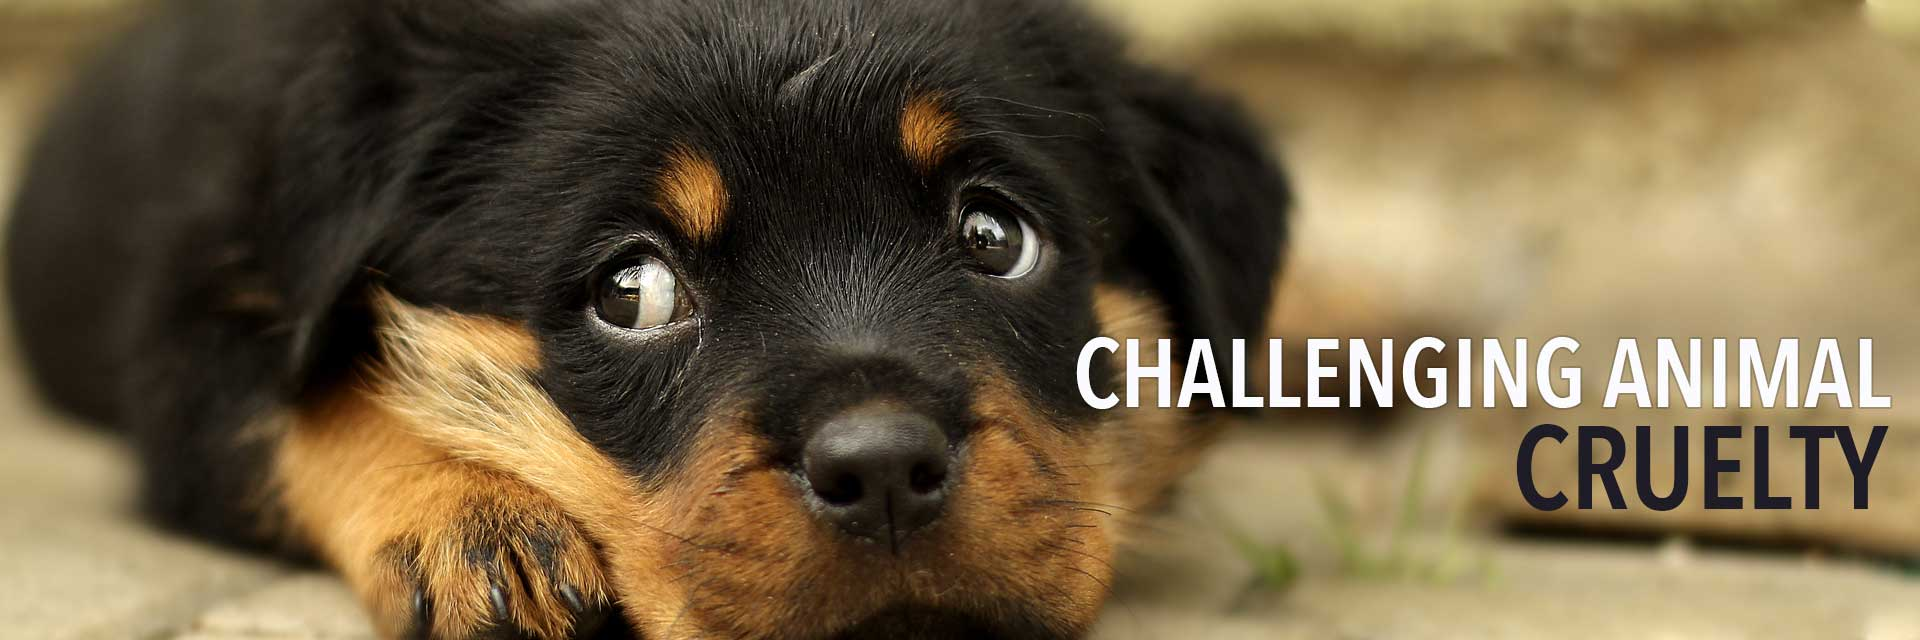 Challenging Animal Cruelty